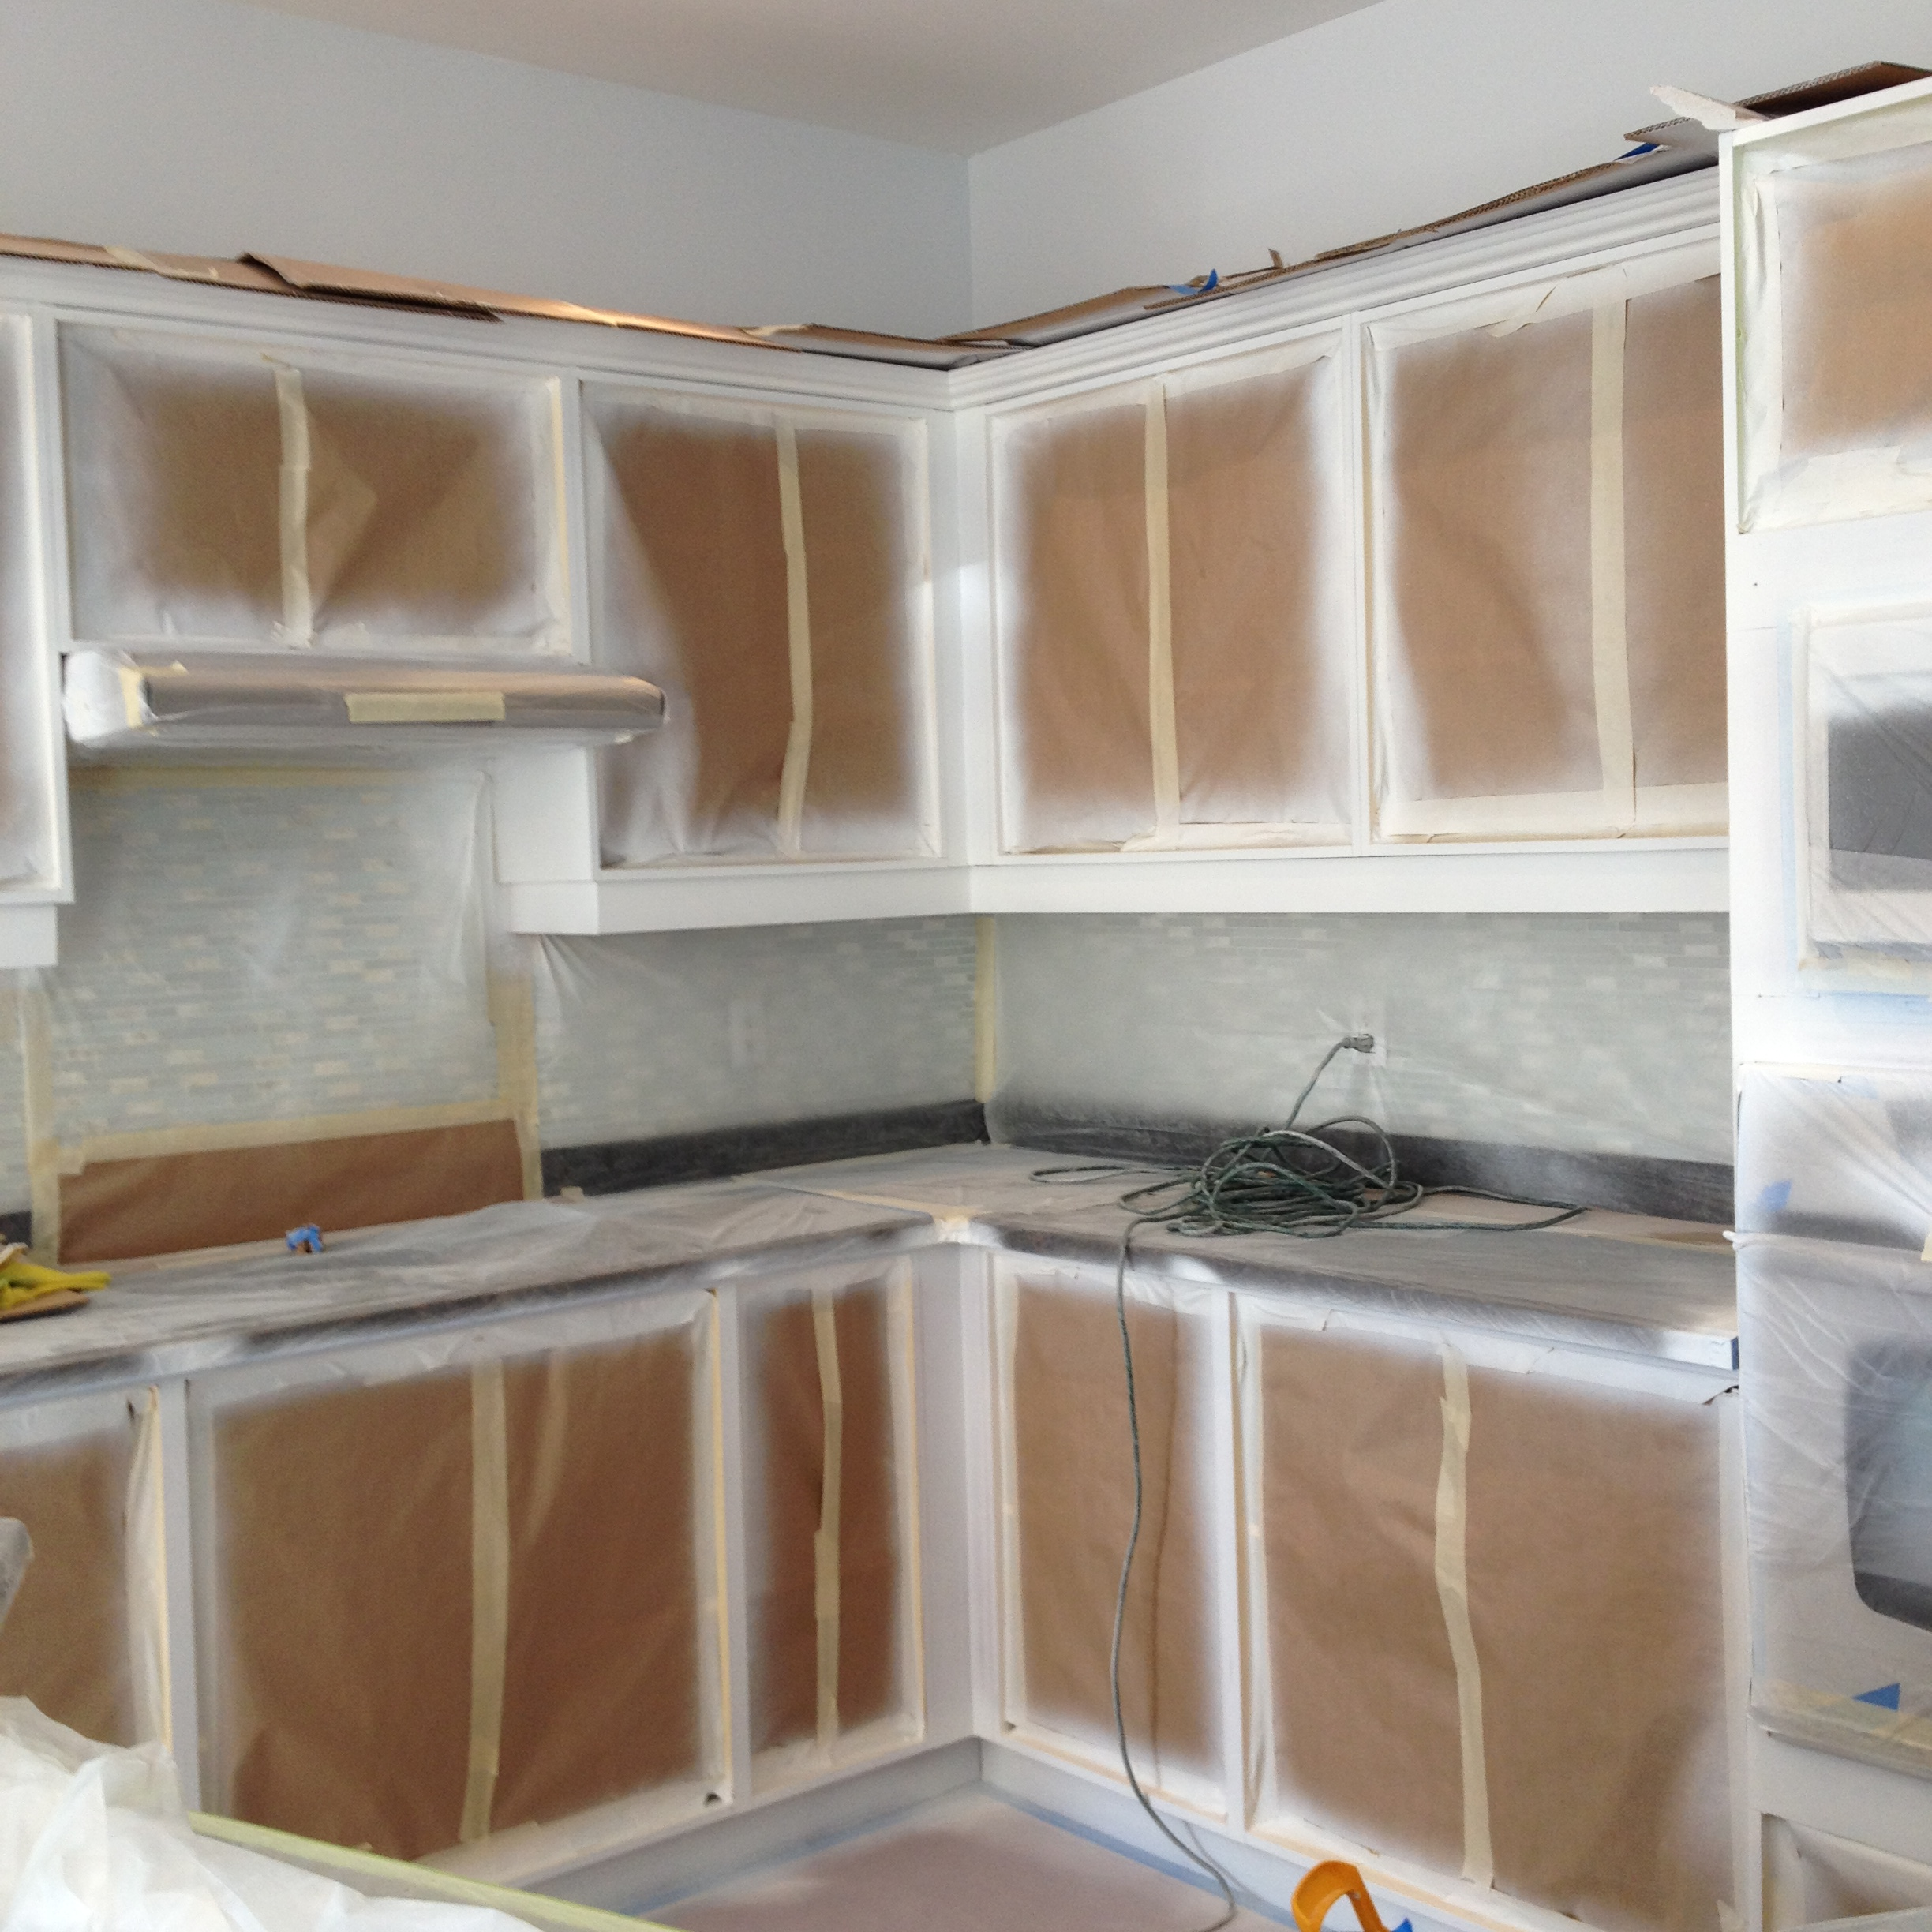 Kitchen Cabinet Spray Paint Spray Painting Kitchen Base Cabinets Kick Plates Crowns